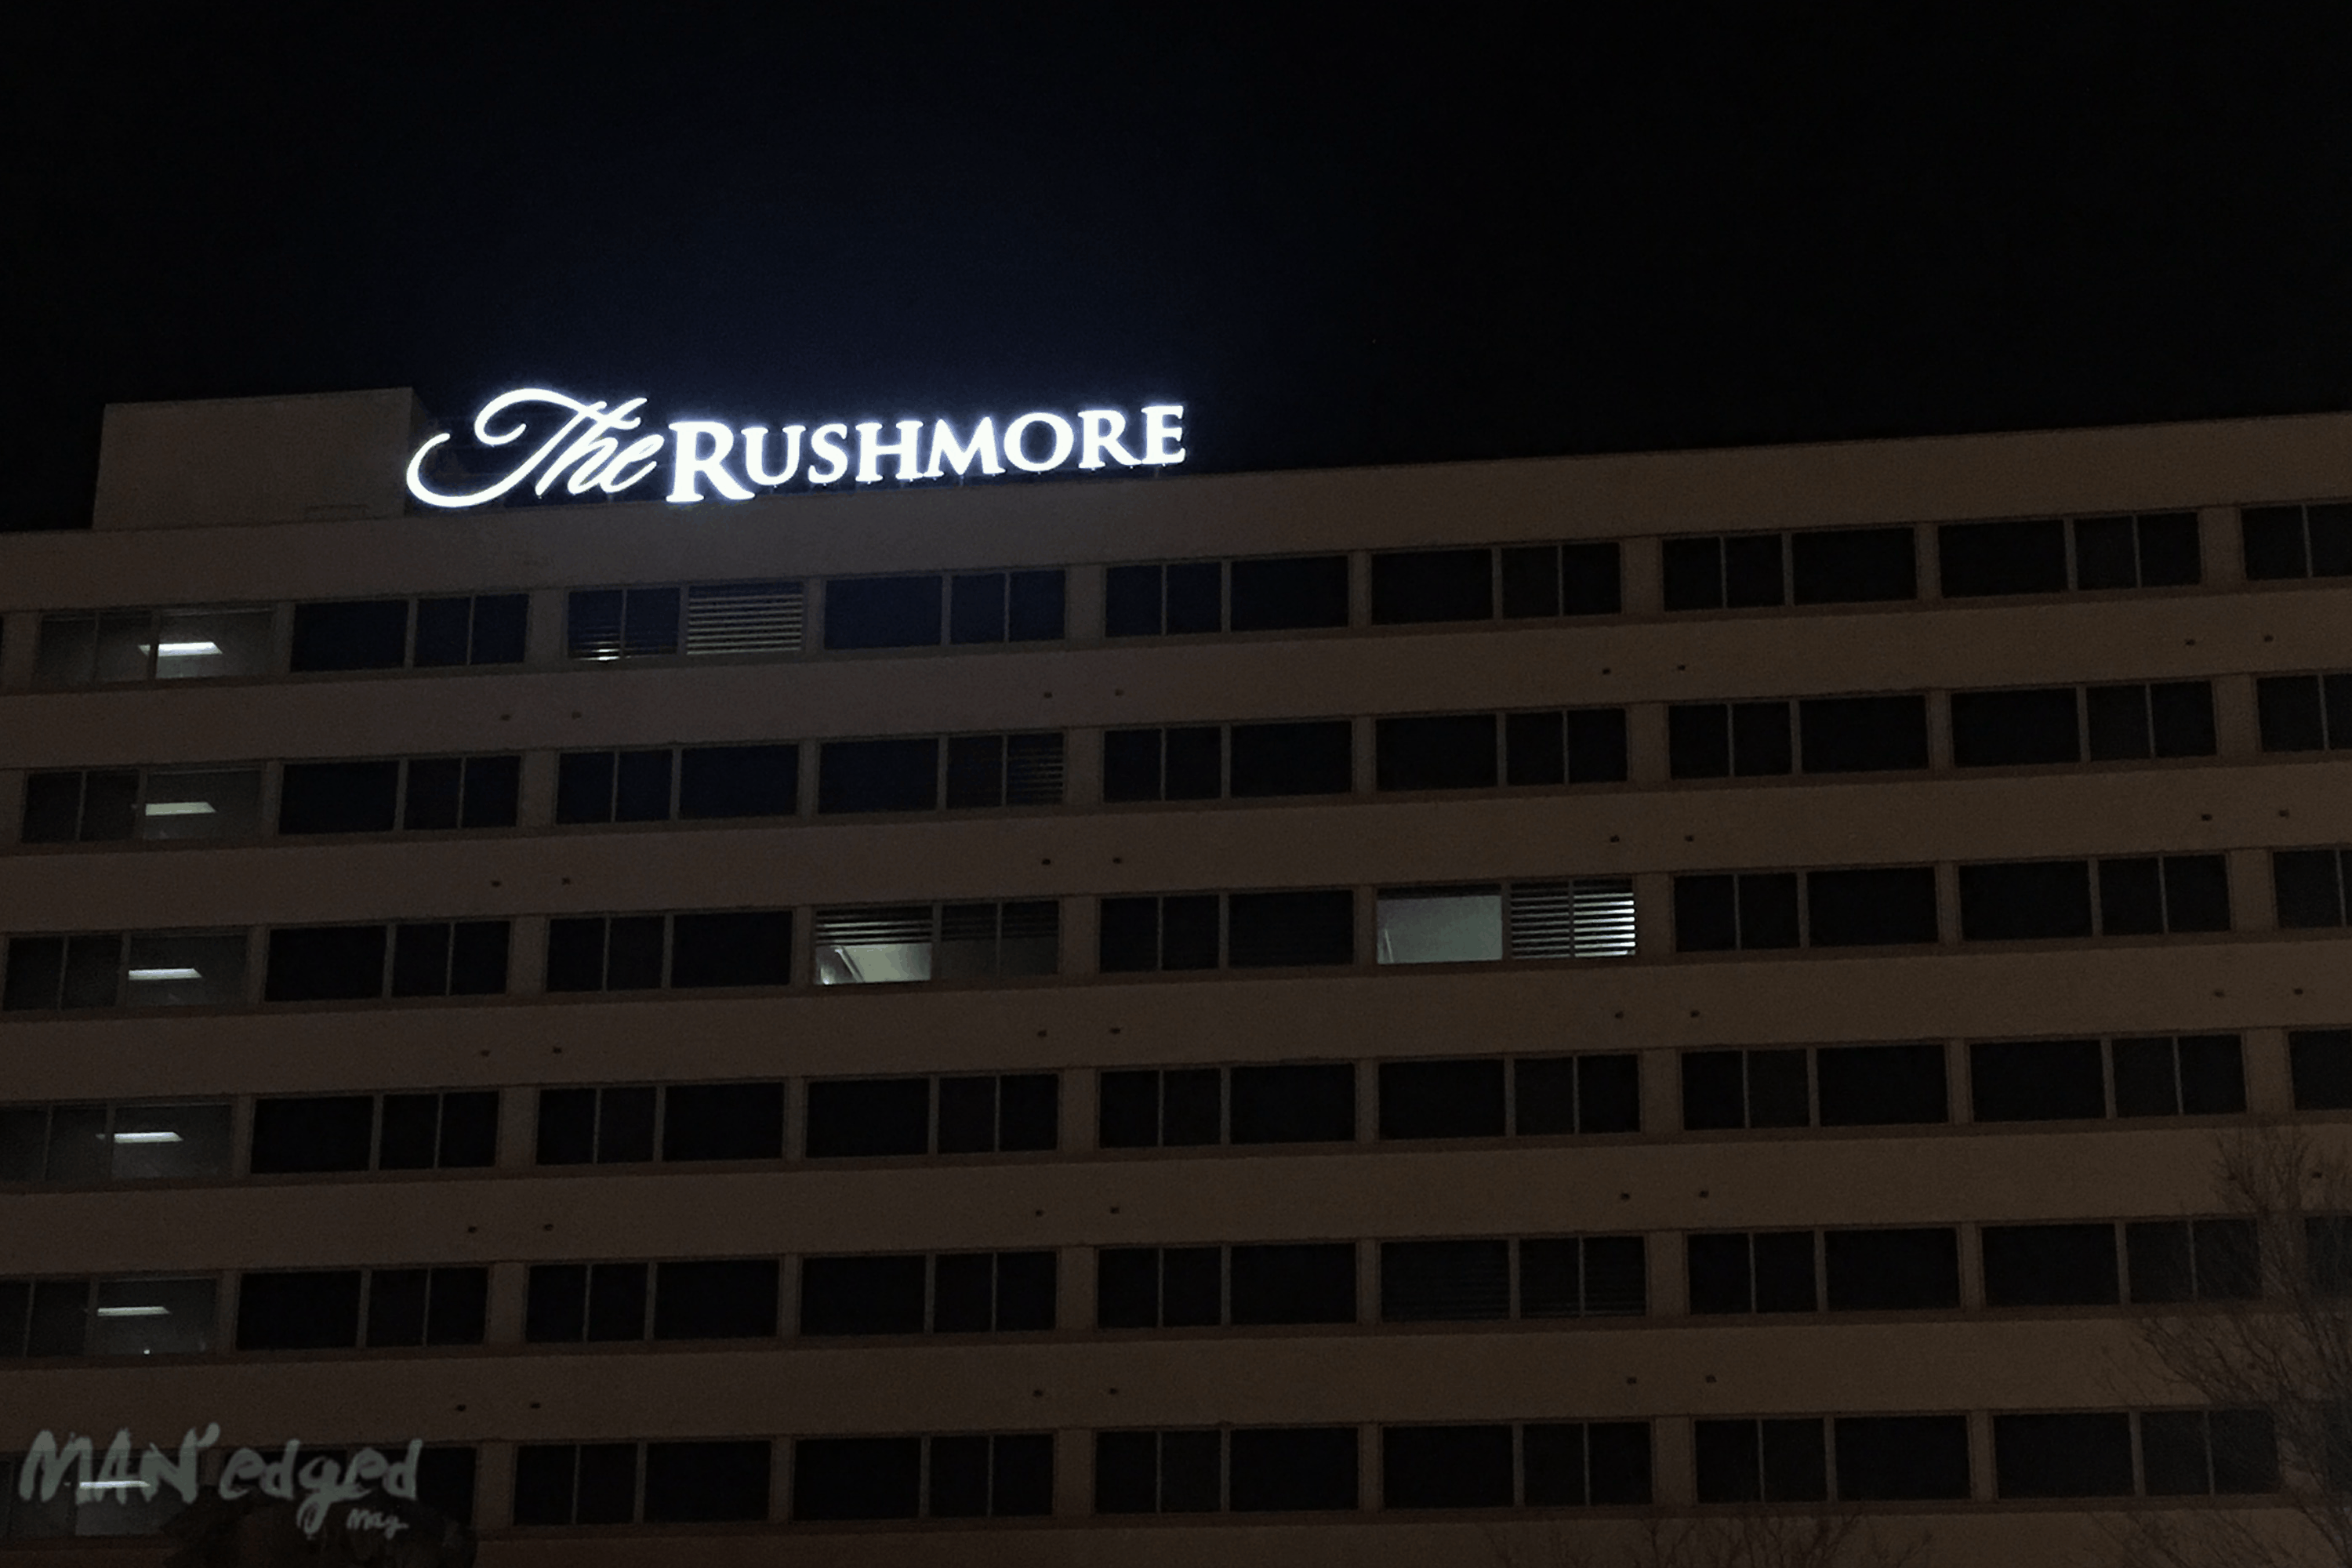 The Rushmore Hotel and Suites building.